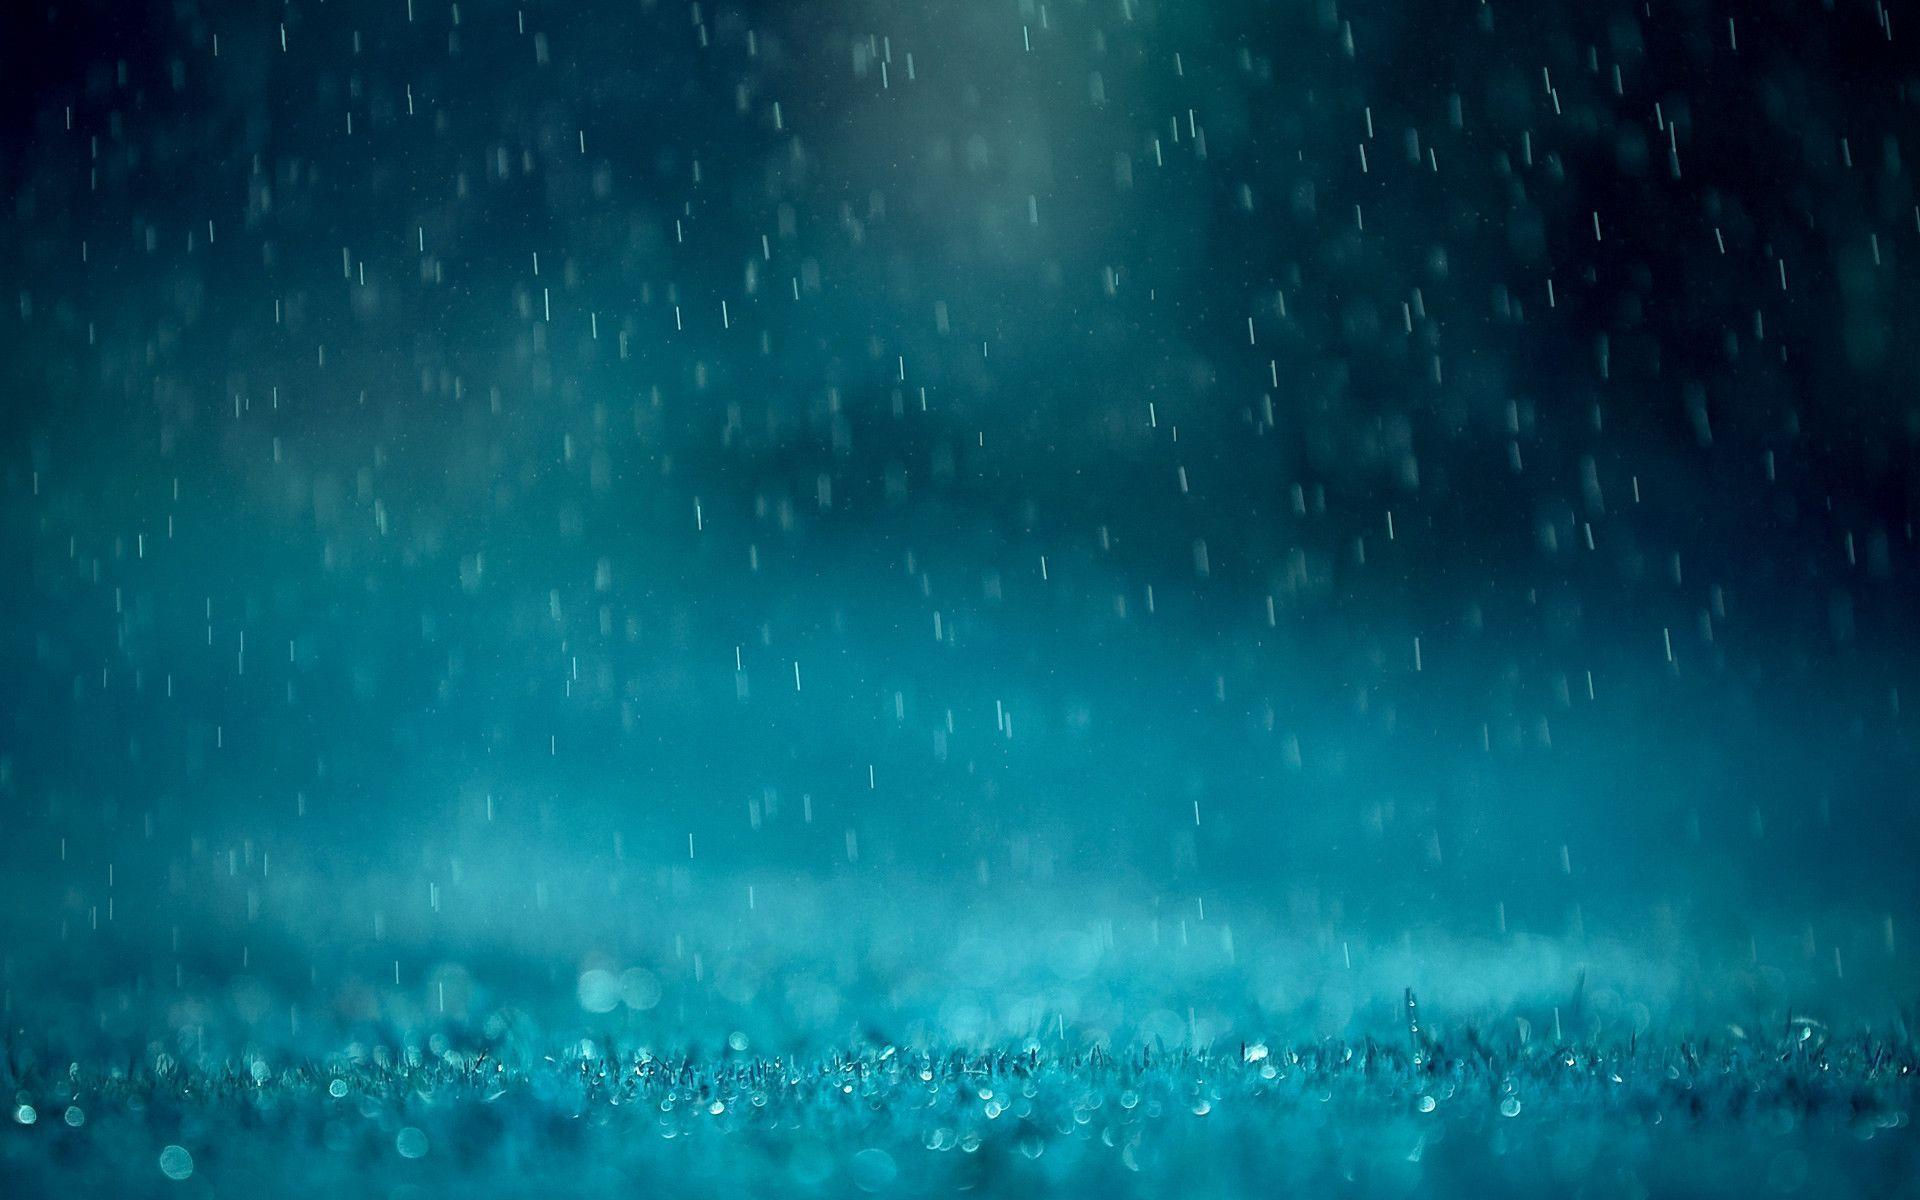 Rain HD Wallpapers  Wallpaper Cave